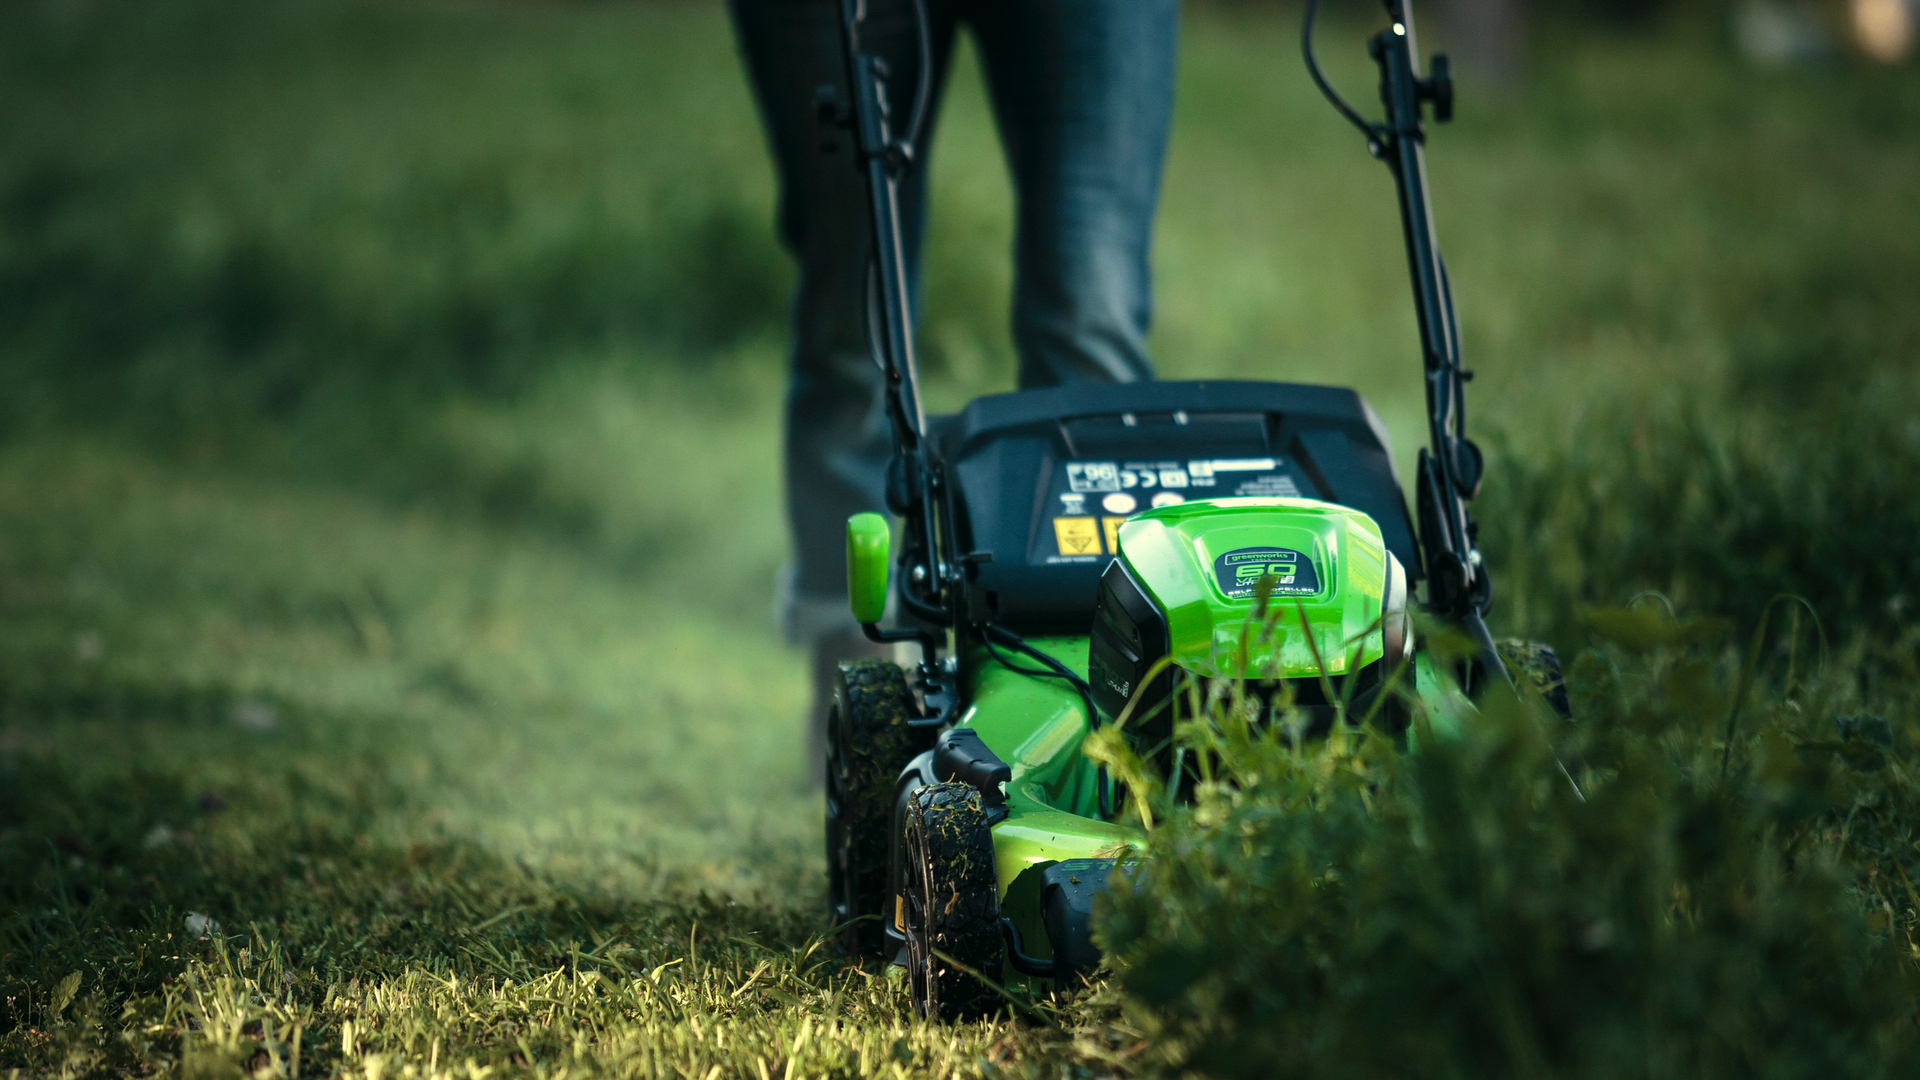 Electric Lawn Mower Sale Best Cordless Lawn Mower 2019 These Electric Lawnmowers Are